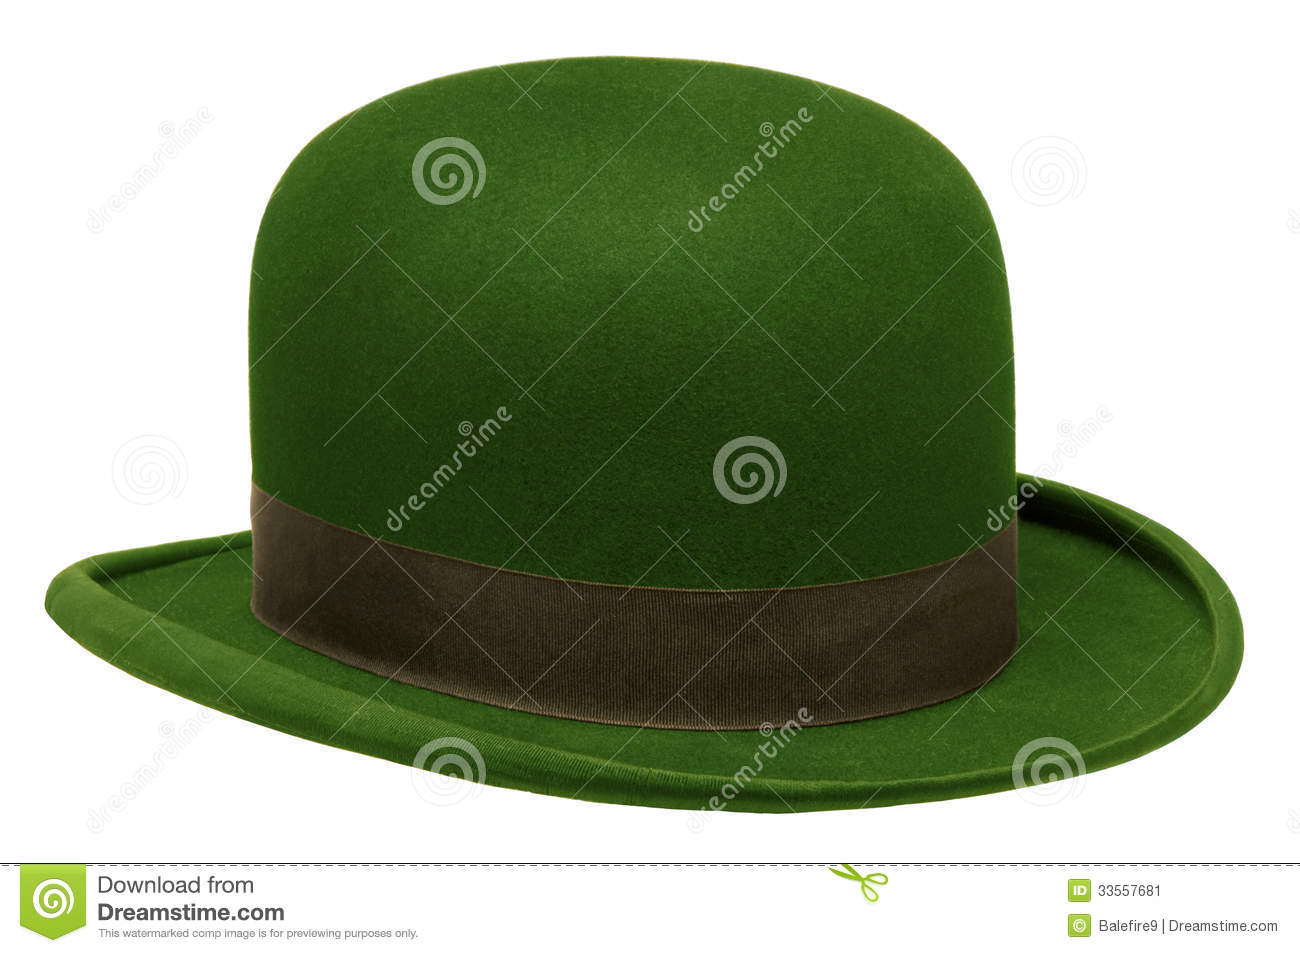 b6e8d257c0e Stock image green bowler derby hat isolated against white background image  jpg 1300x953 Green bowler hat